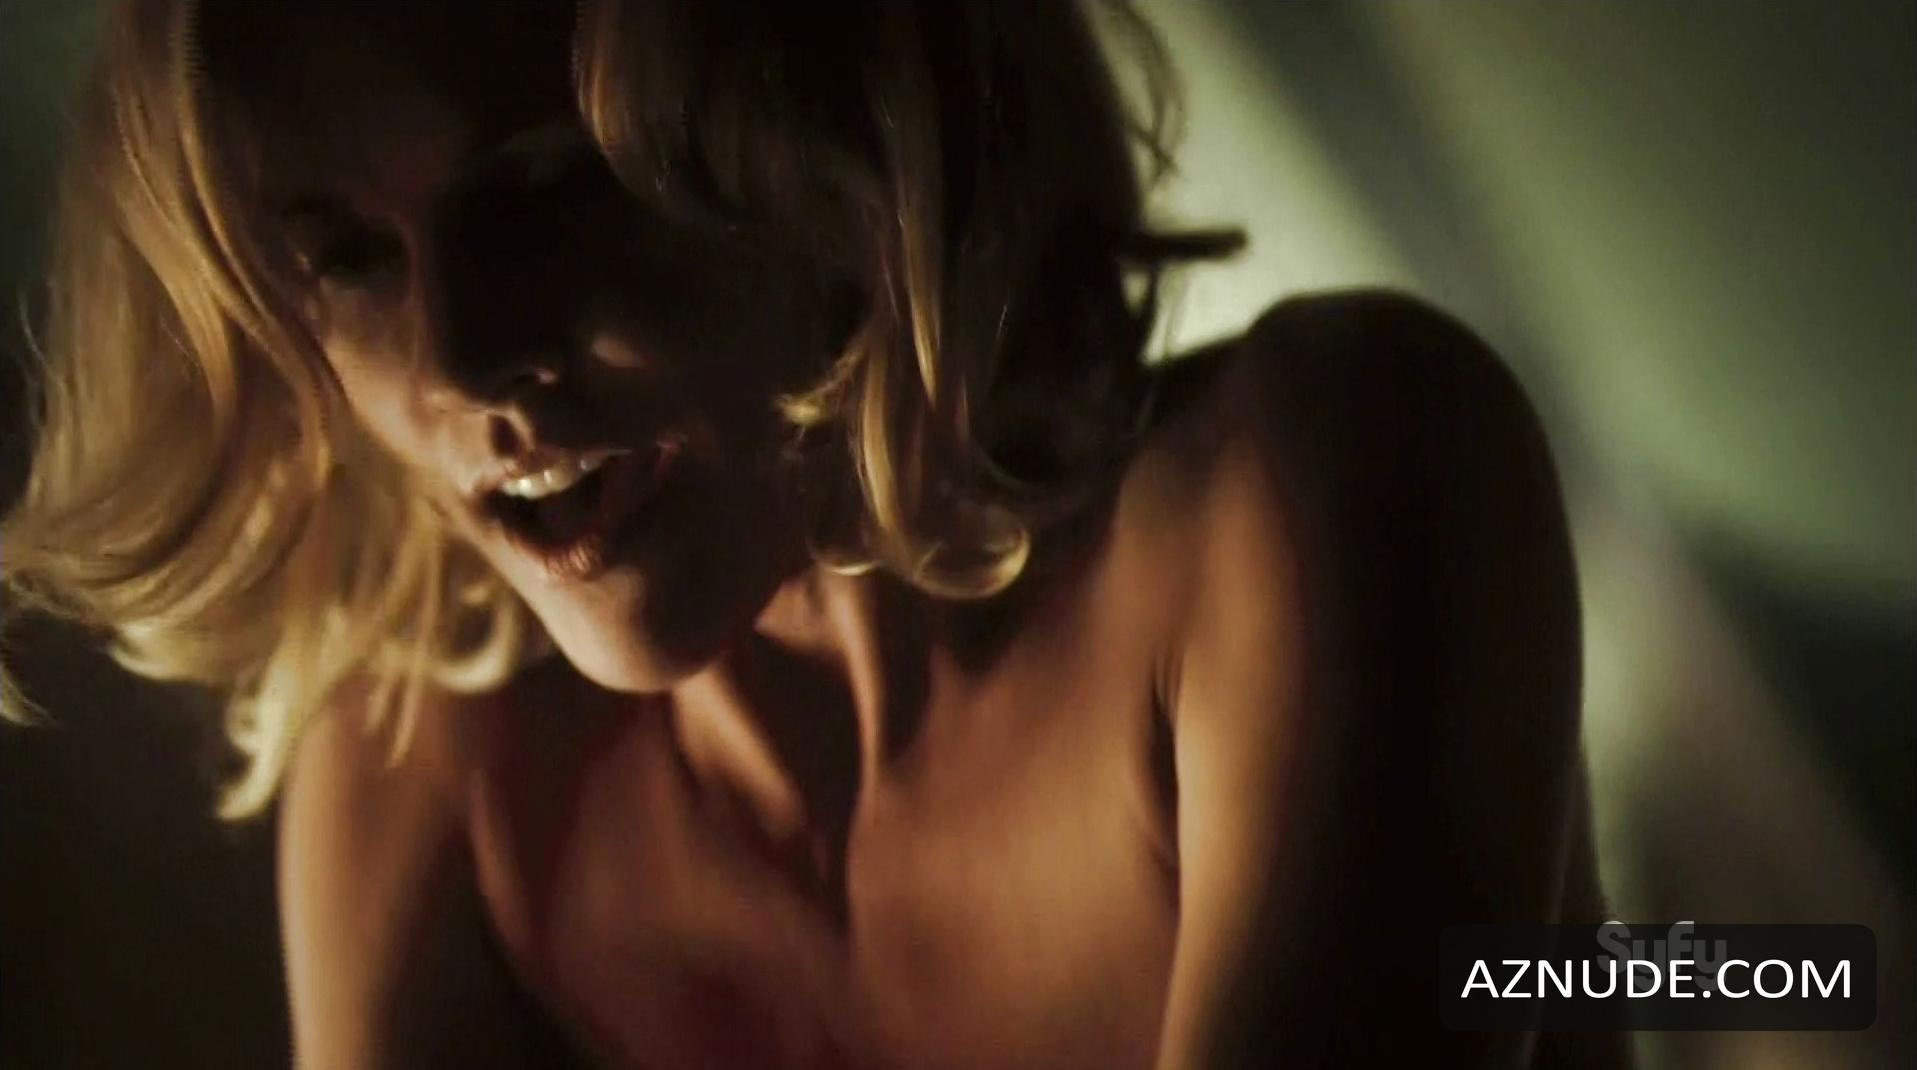 Yes, really. nude pics of tricia helfer are not